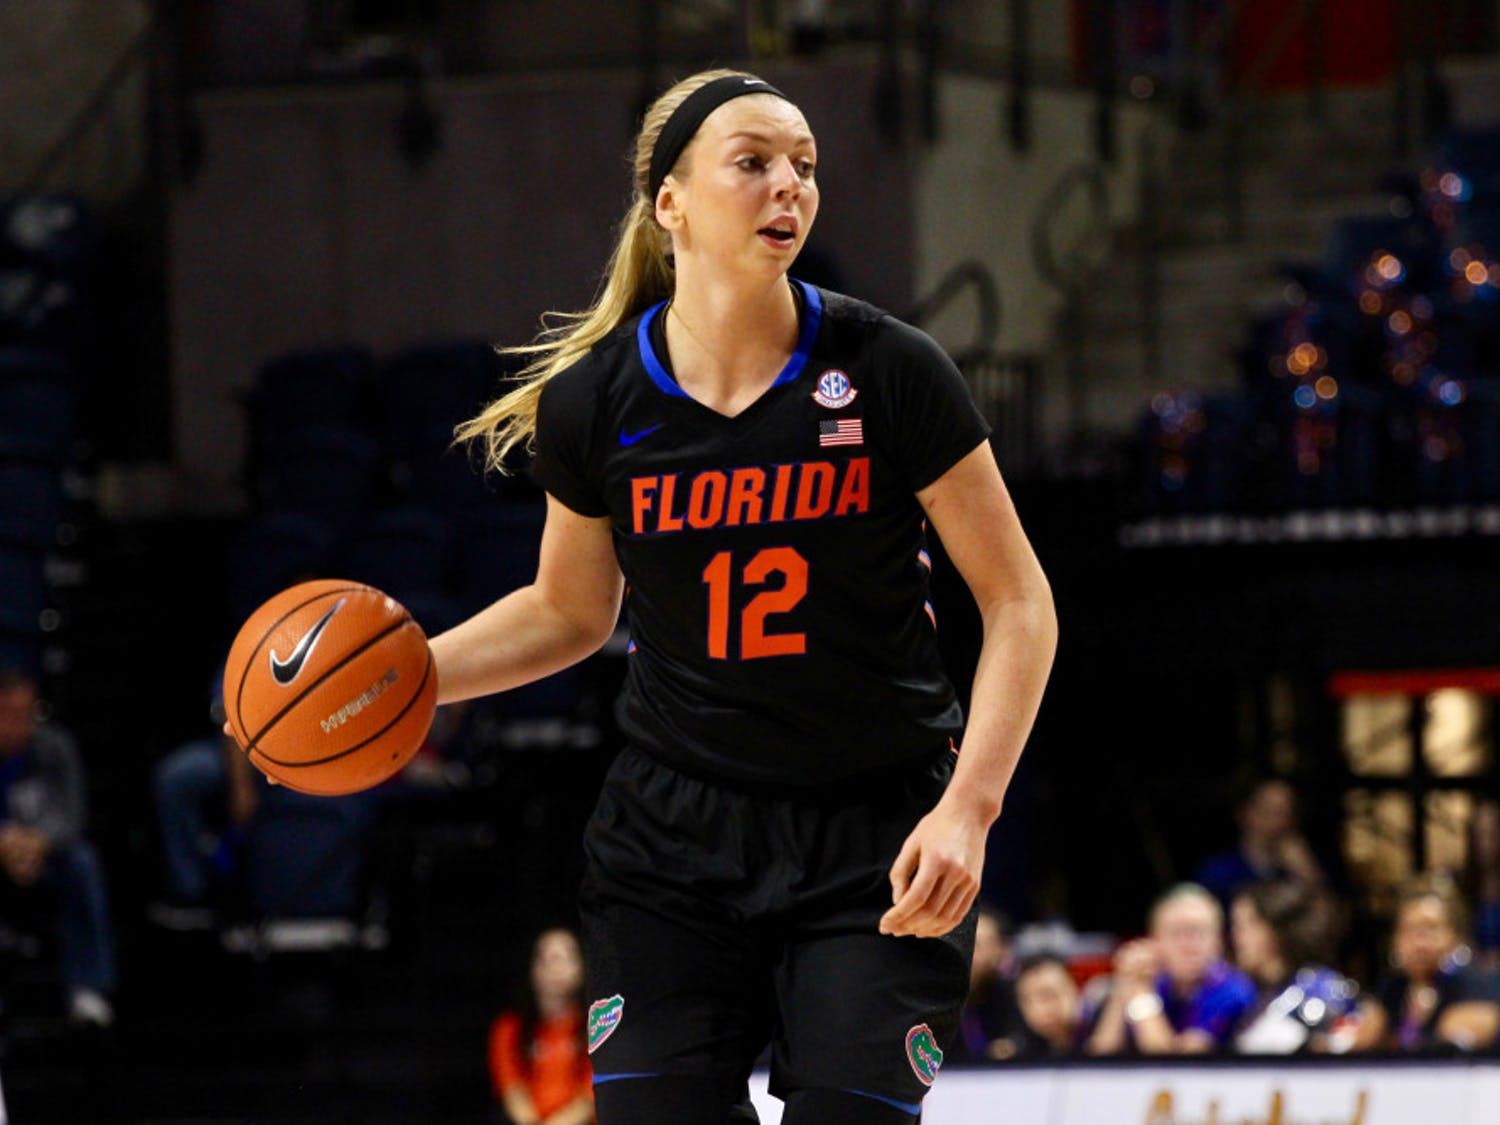 Forward Paulina Hersler tied her career high with 19 points in Florida's 65-51 win over Arkansas, its first conference victory in the Cameron Newbauer era.